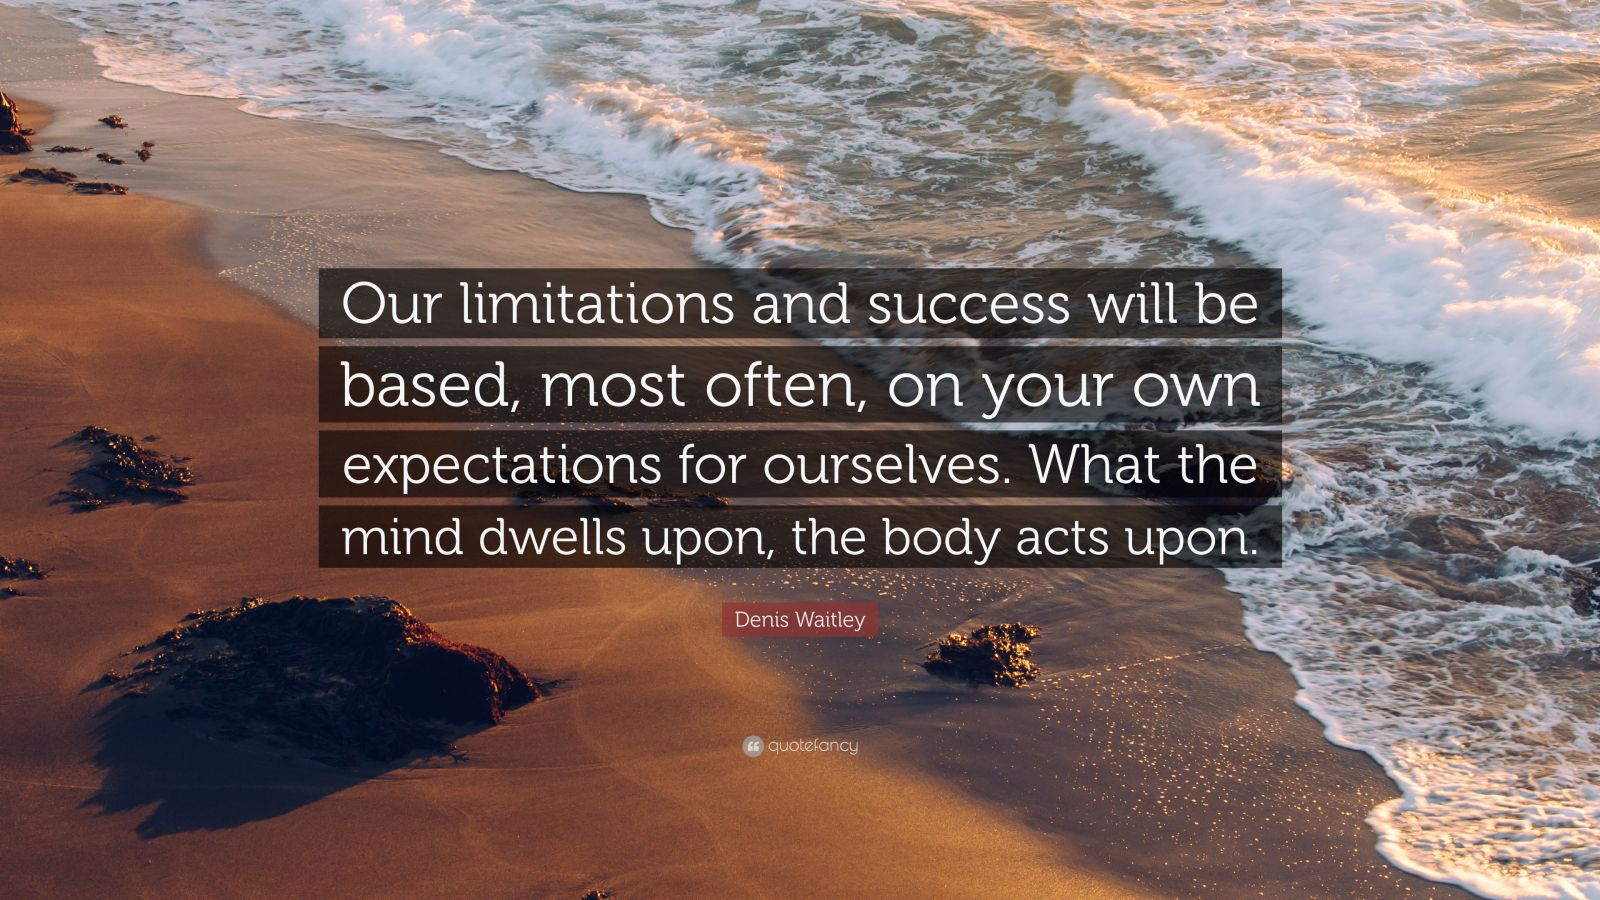 """Denis Waitley Quote: """"Our limitations and success will be based, most often, on your own expectations for ourselves. What the mind dwells upon, the body acts upon."""""""